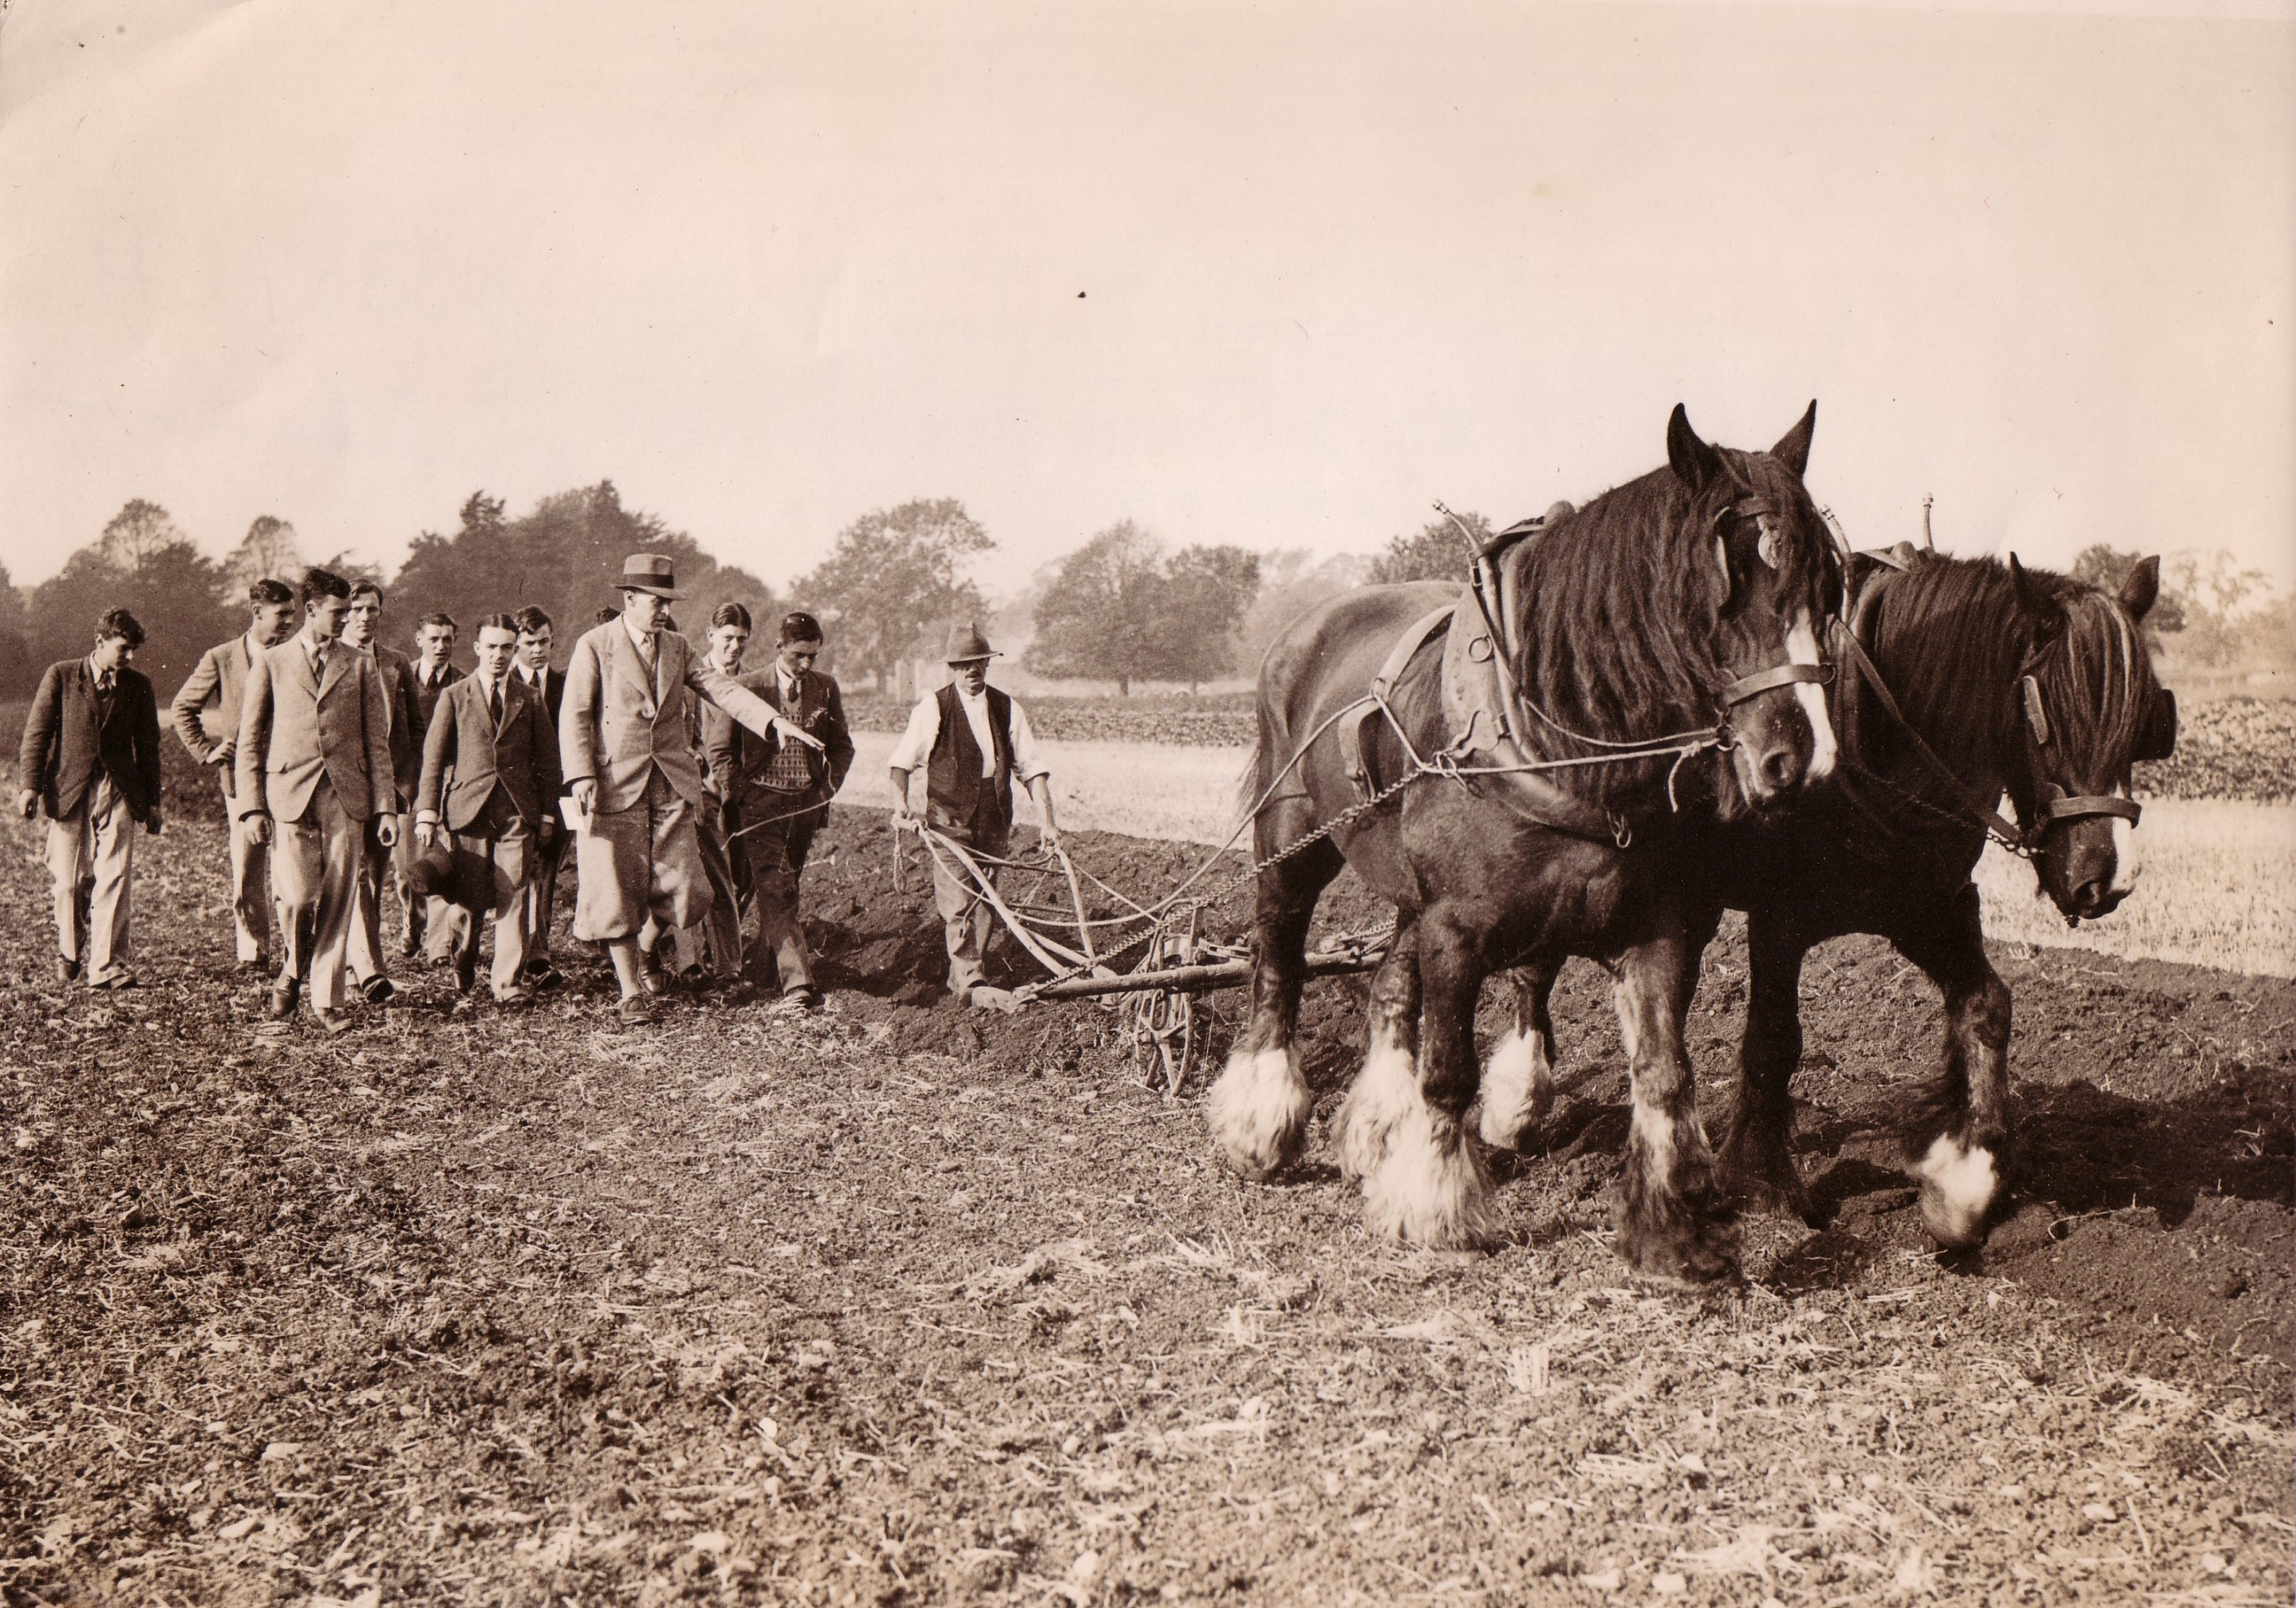 Ploughing demonstration, ca 1935